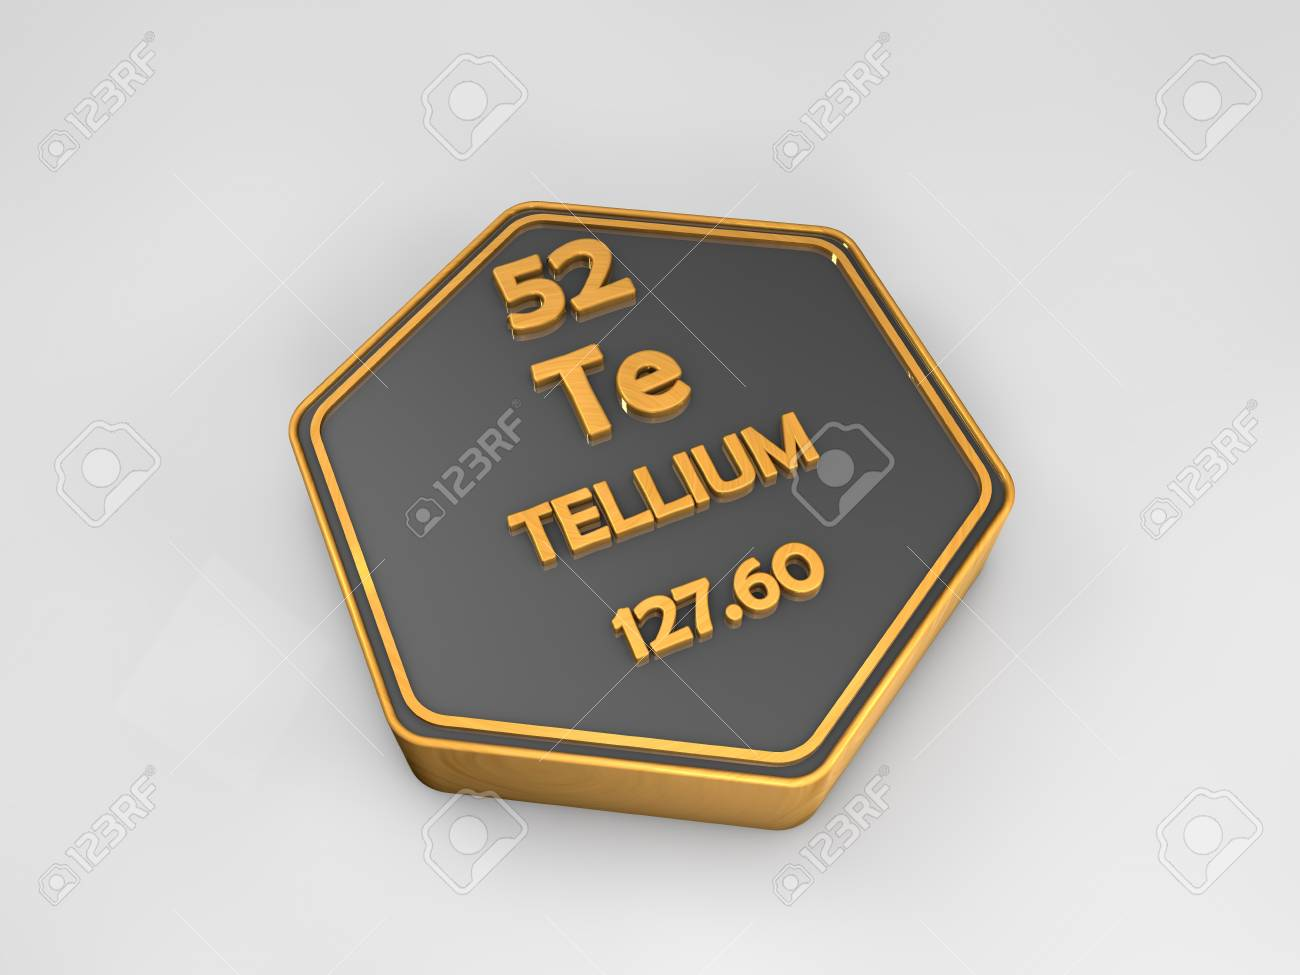 Telium te chemical element periodic table hexagon shape 3d stock photo telium te chemical element periodic table hexagon shape 3d render urtaz Image collections